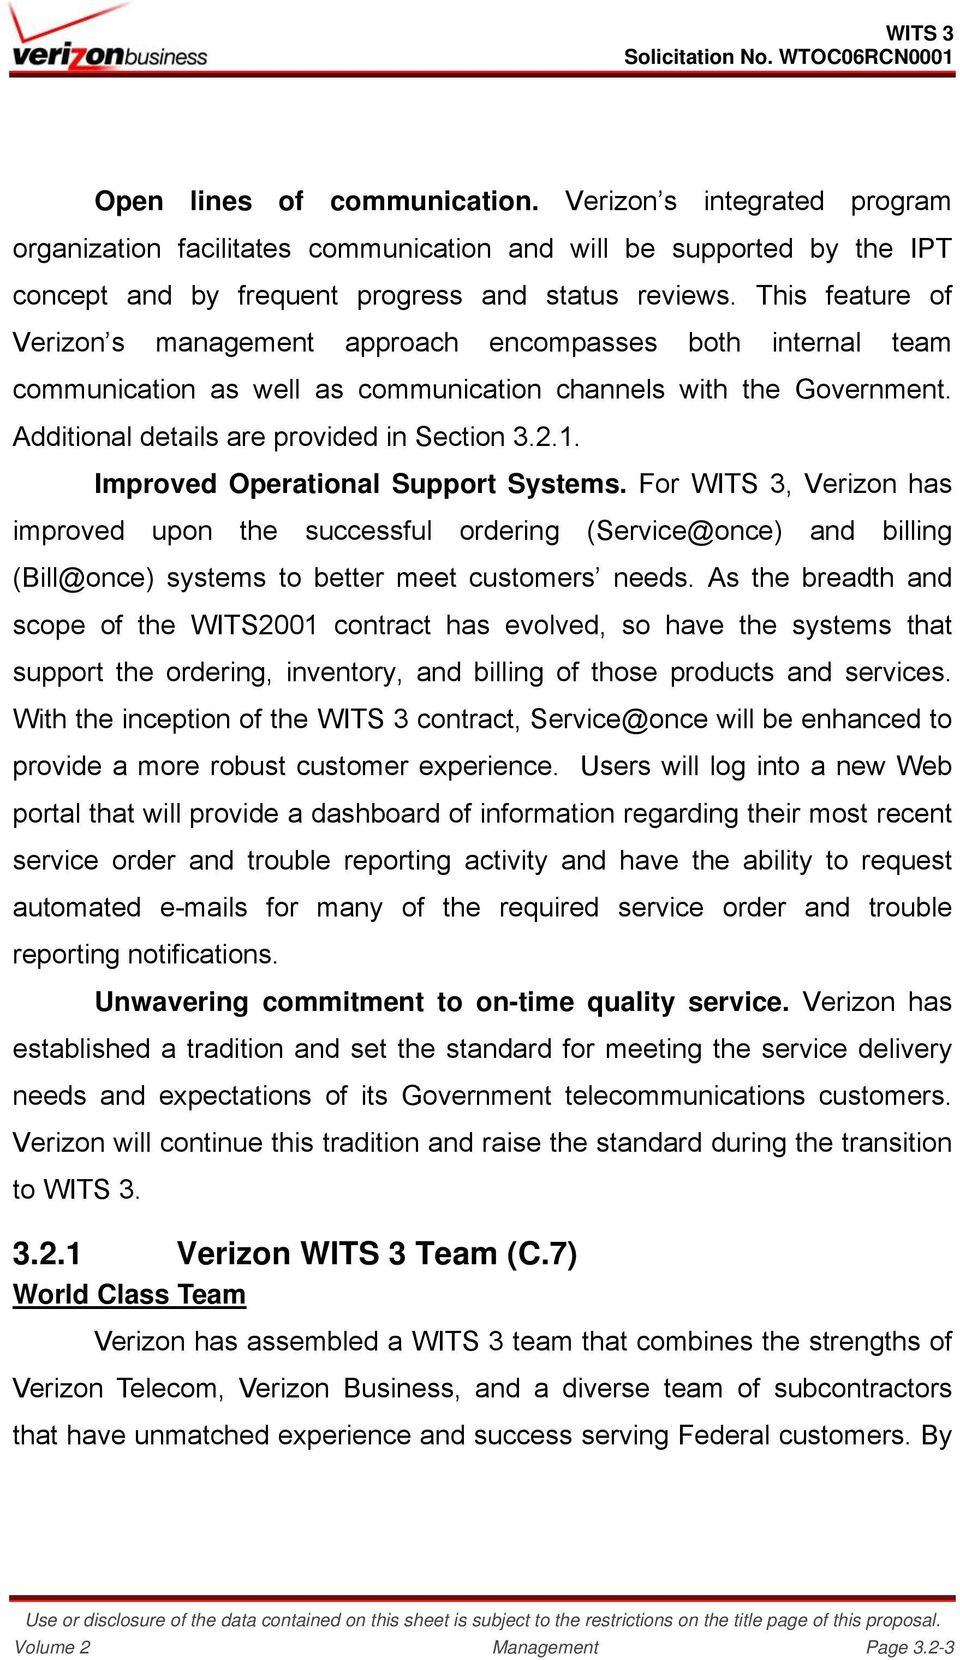 Improved Operational Support Systems. For WITS 3, Verizon has improved upon the successful ordering (Service@once) and billing (Bill@once) systems to better meet customers needs.